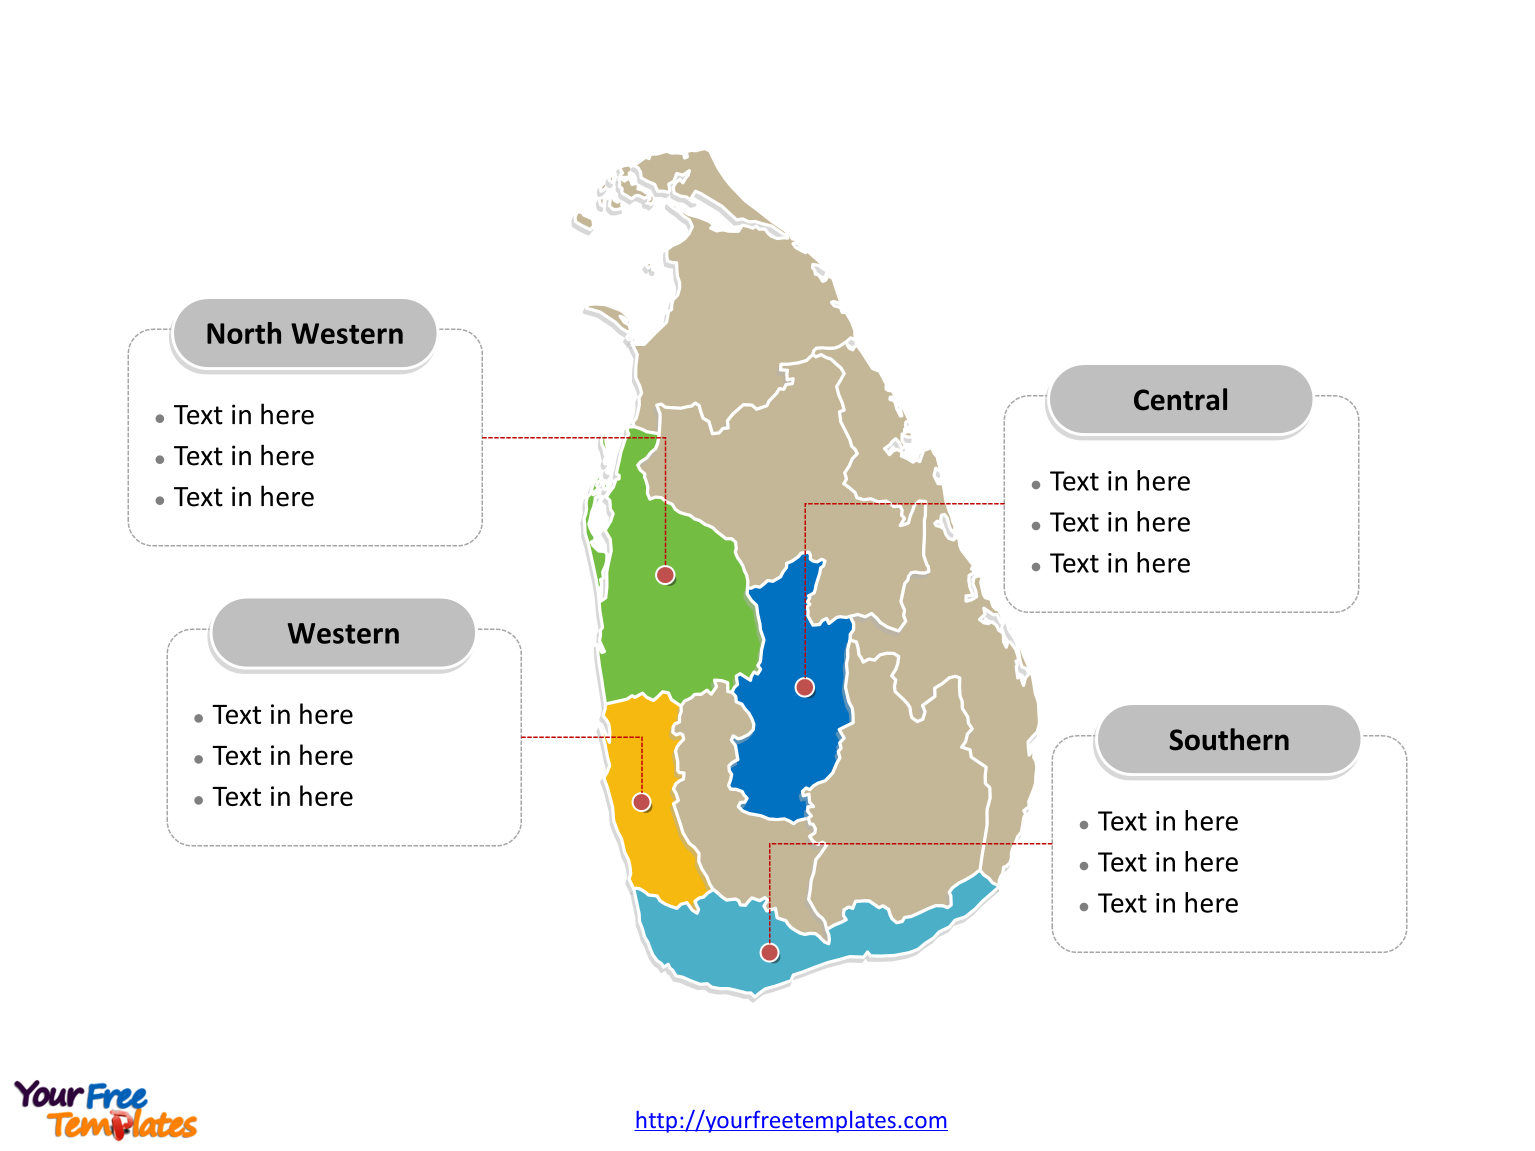 Immediately free download editable sri lanka outline and political immediately free download editable sri lanka outline and political map in editable format no registration gumiabroncs Image collections